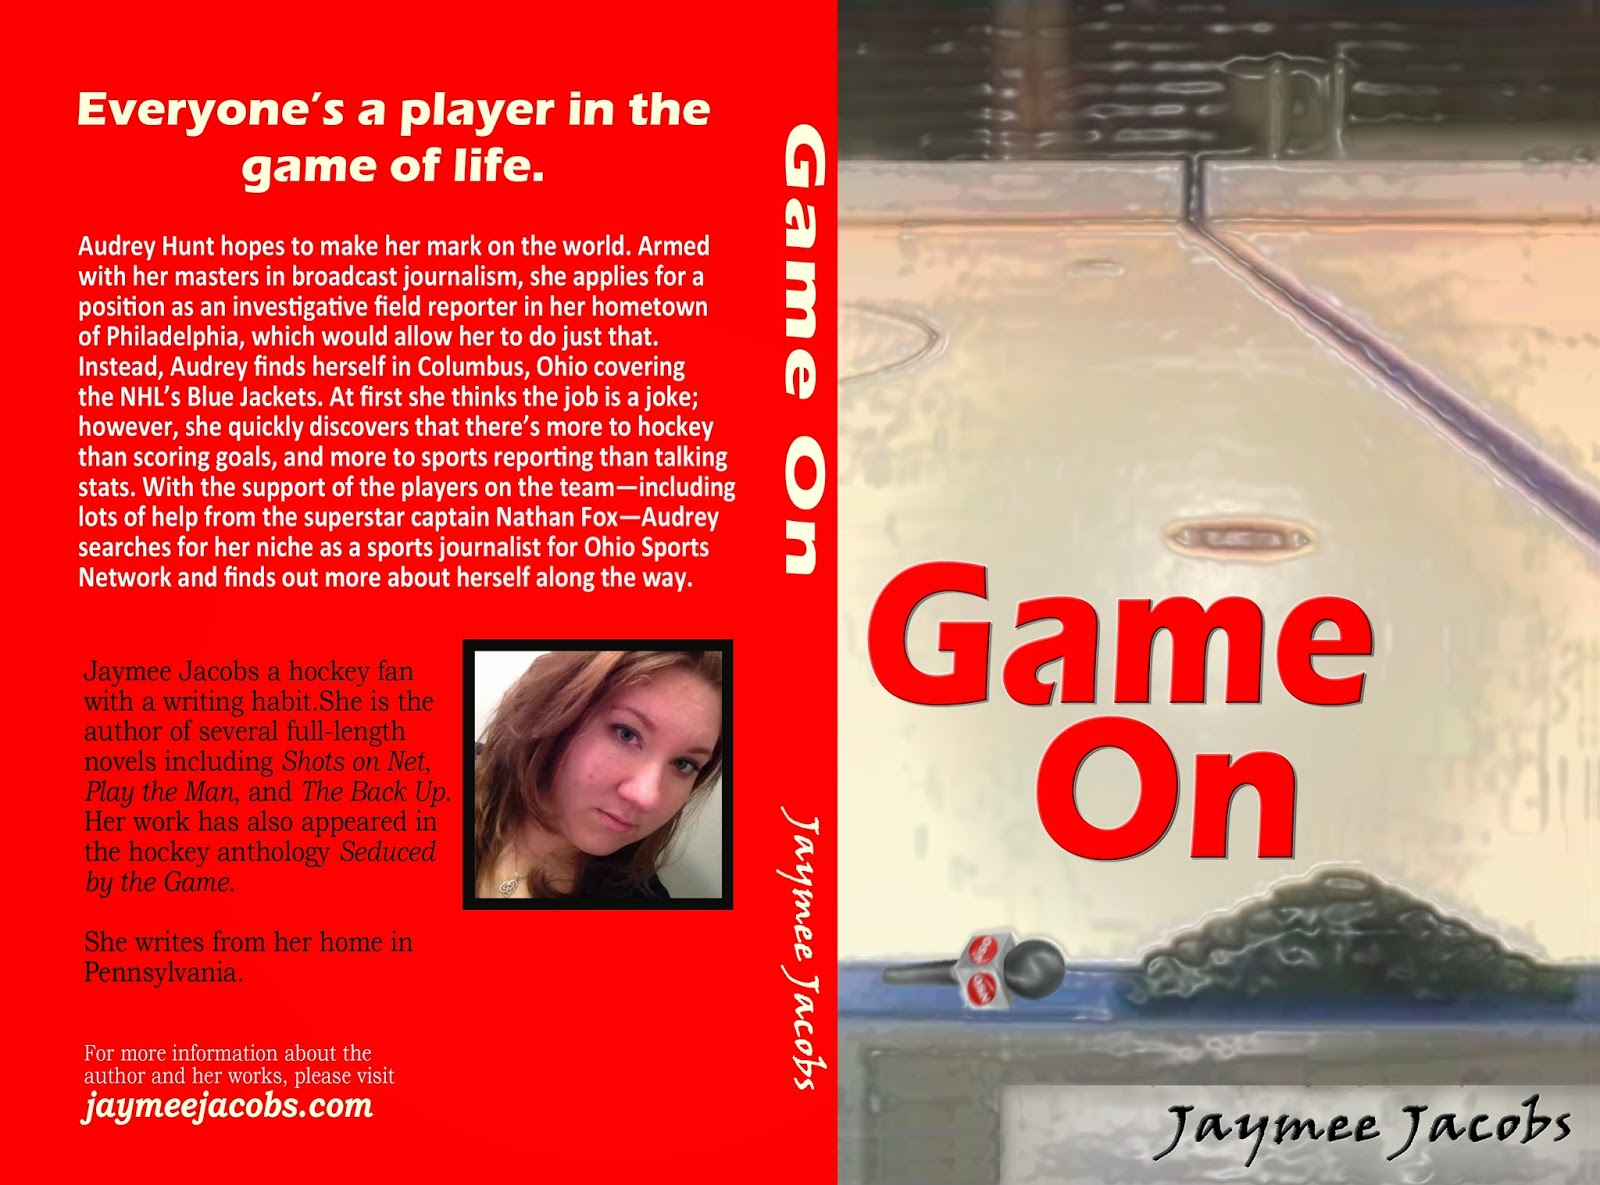 http://www.amazon.com/Game-On-Jaymee-Jacobs/dp/1497465575/ref=tmm_pap_title_0?ie=UTF8&qid=1403101550&sr=8-1